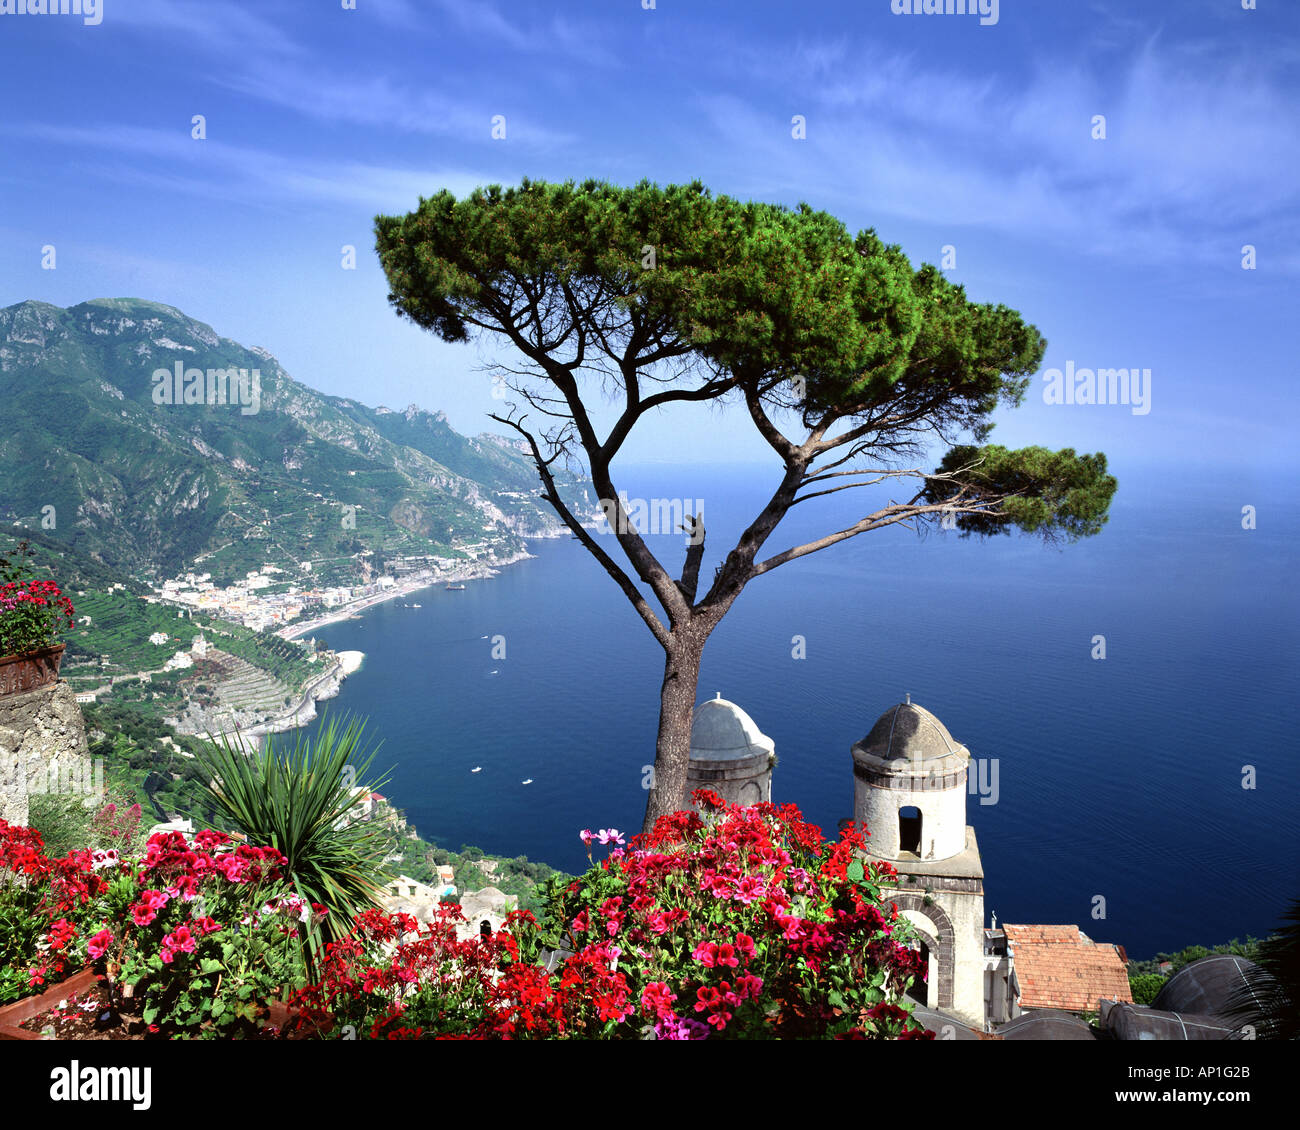 IT - CAMPANIA: Villa Rufolo at Ravello overlooking the Gulf of Salerno - Stock Image